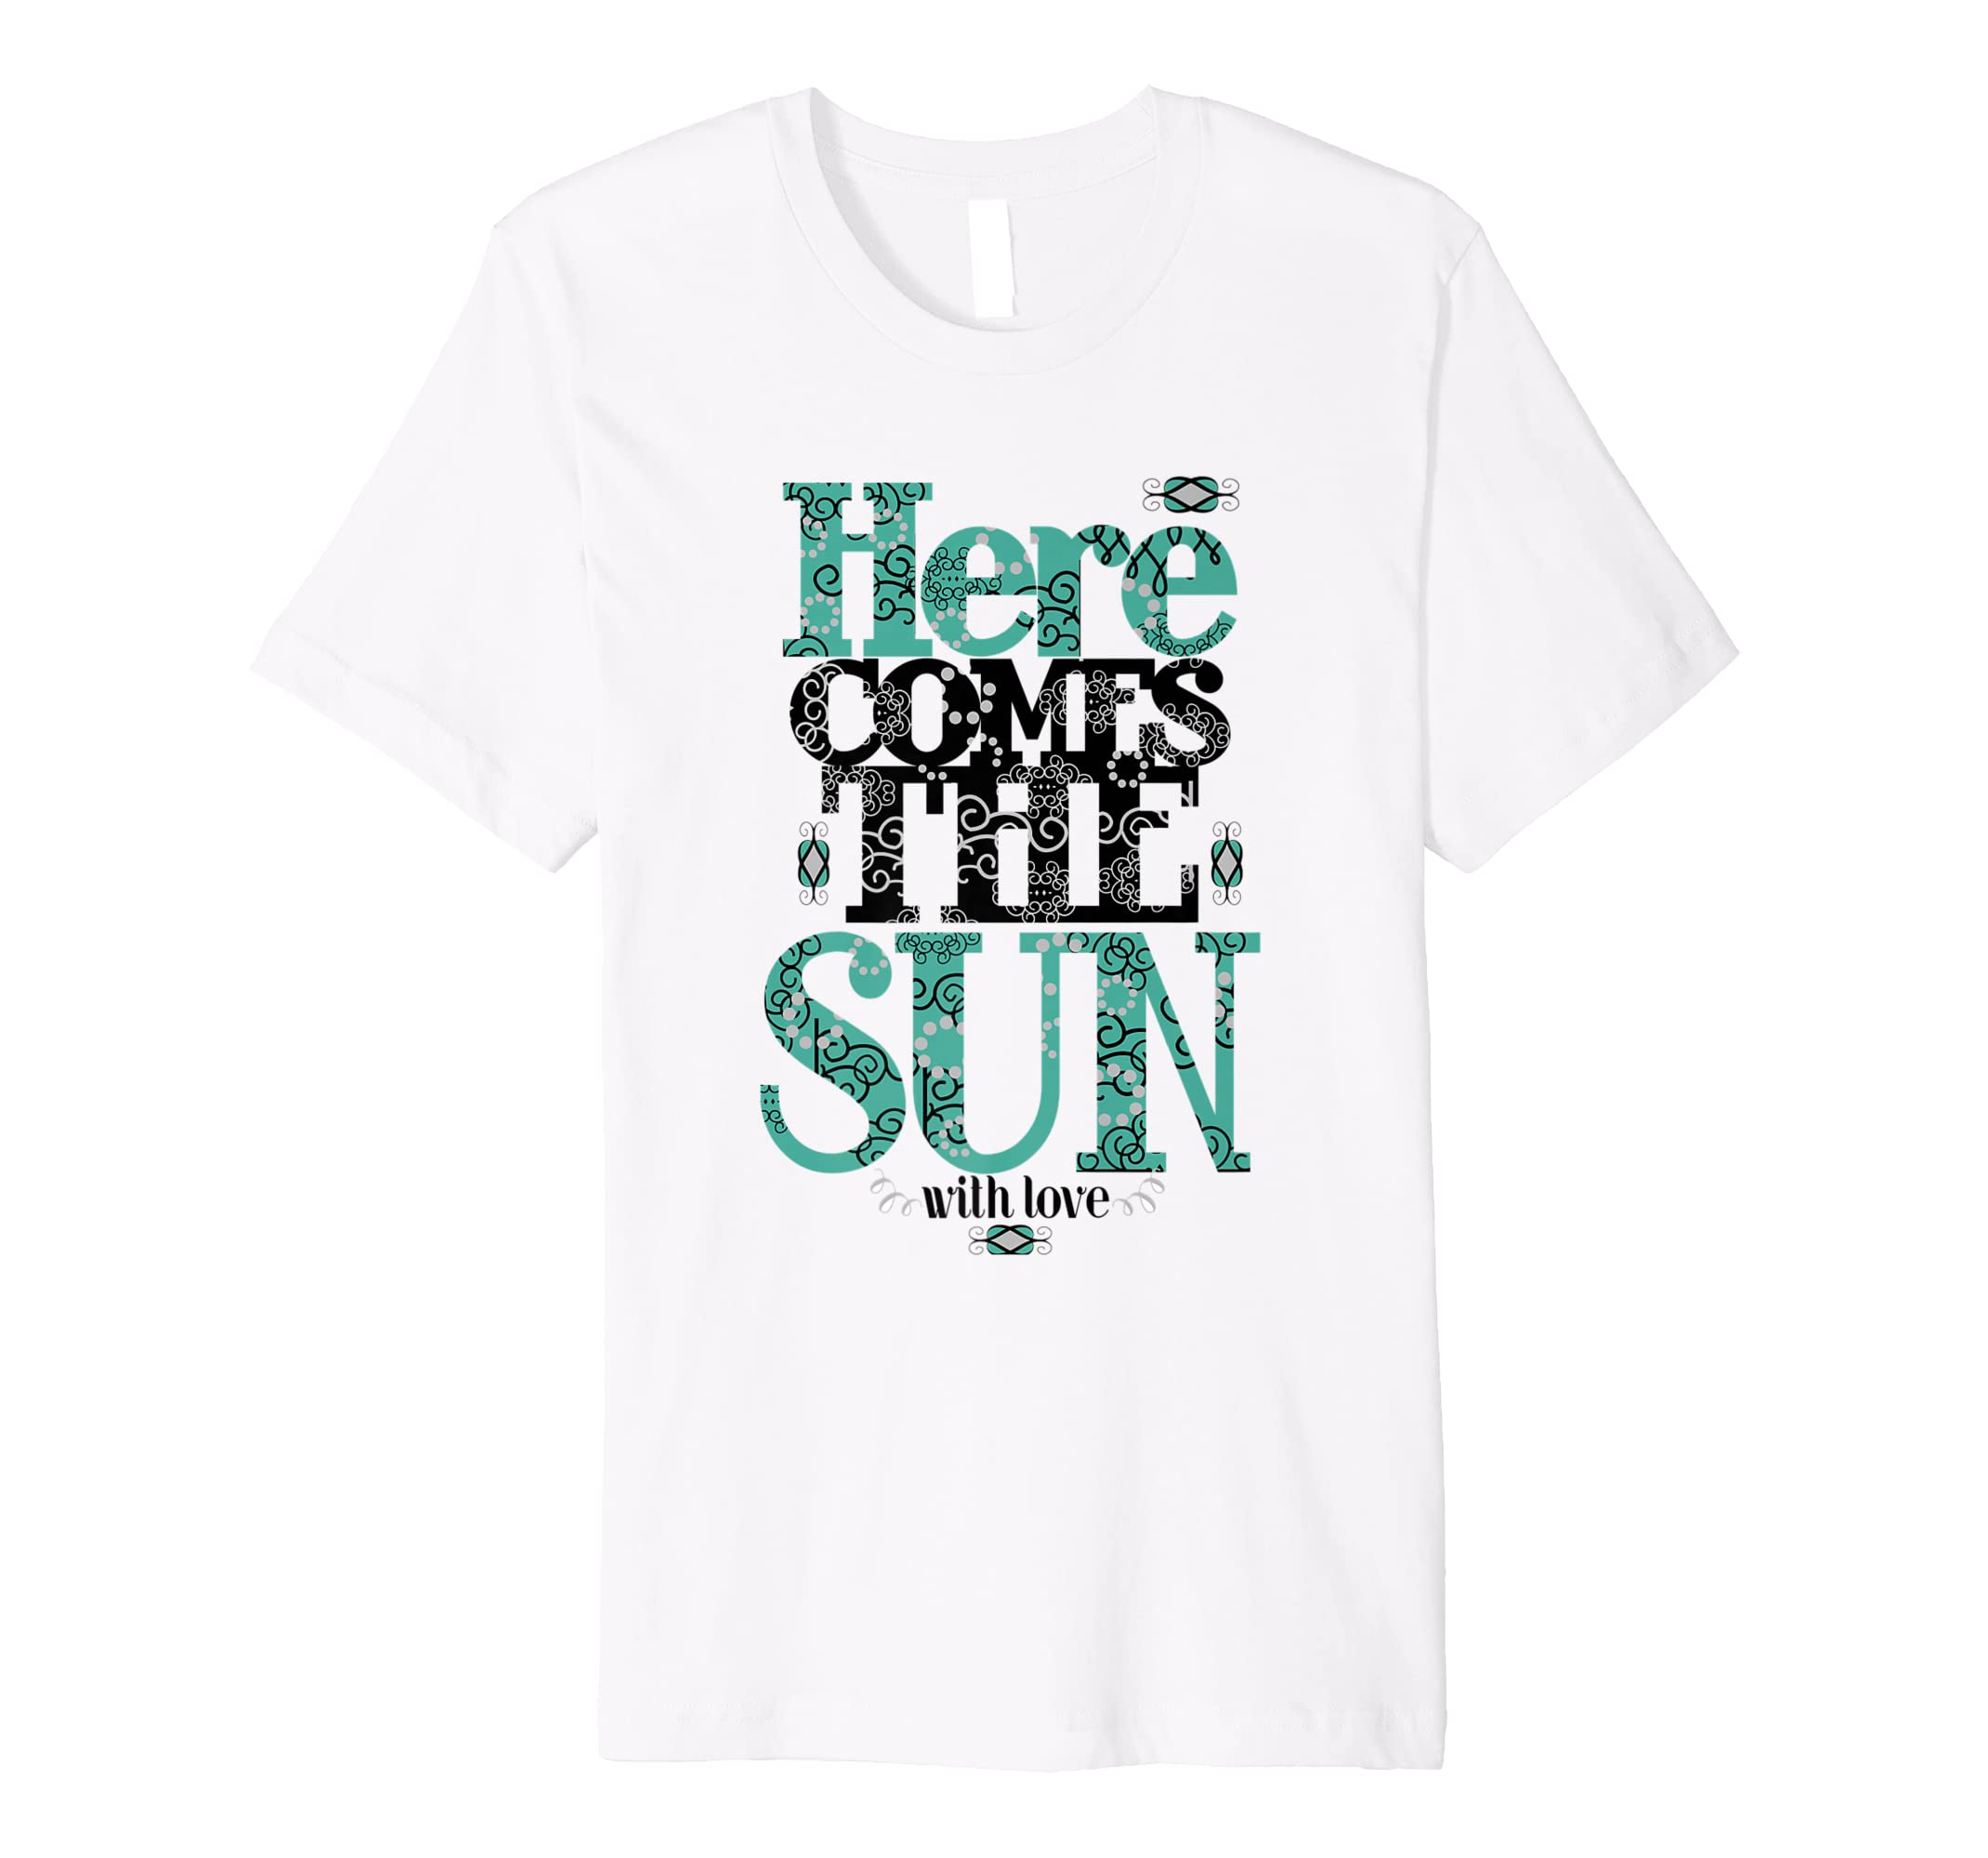 64b251f2792d Amazon.com  Here comes the sun  Clothing